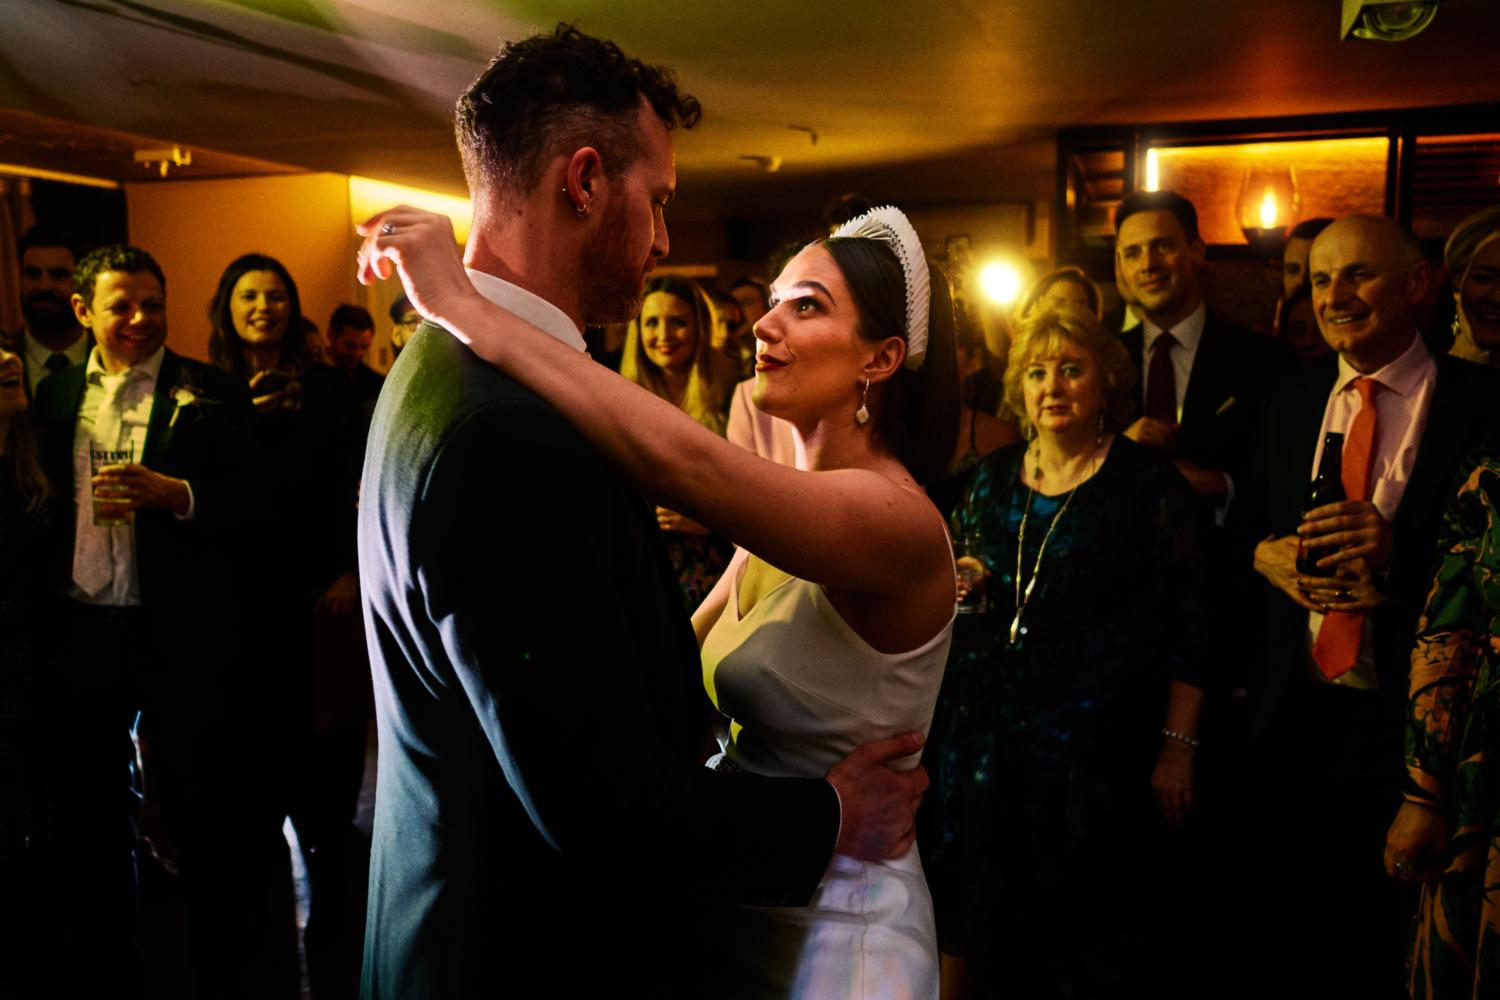 A couple have their first dance at Dublin City Hall